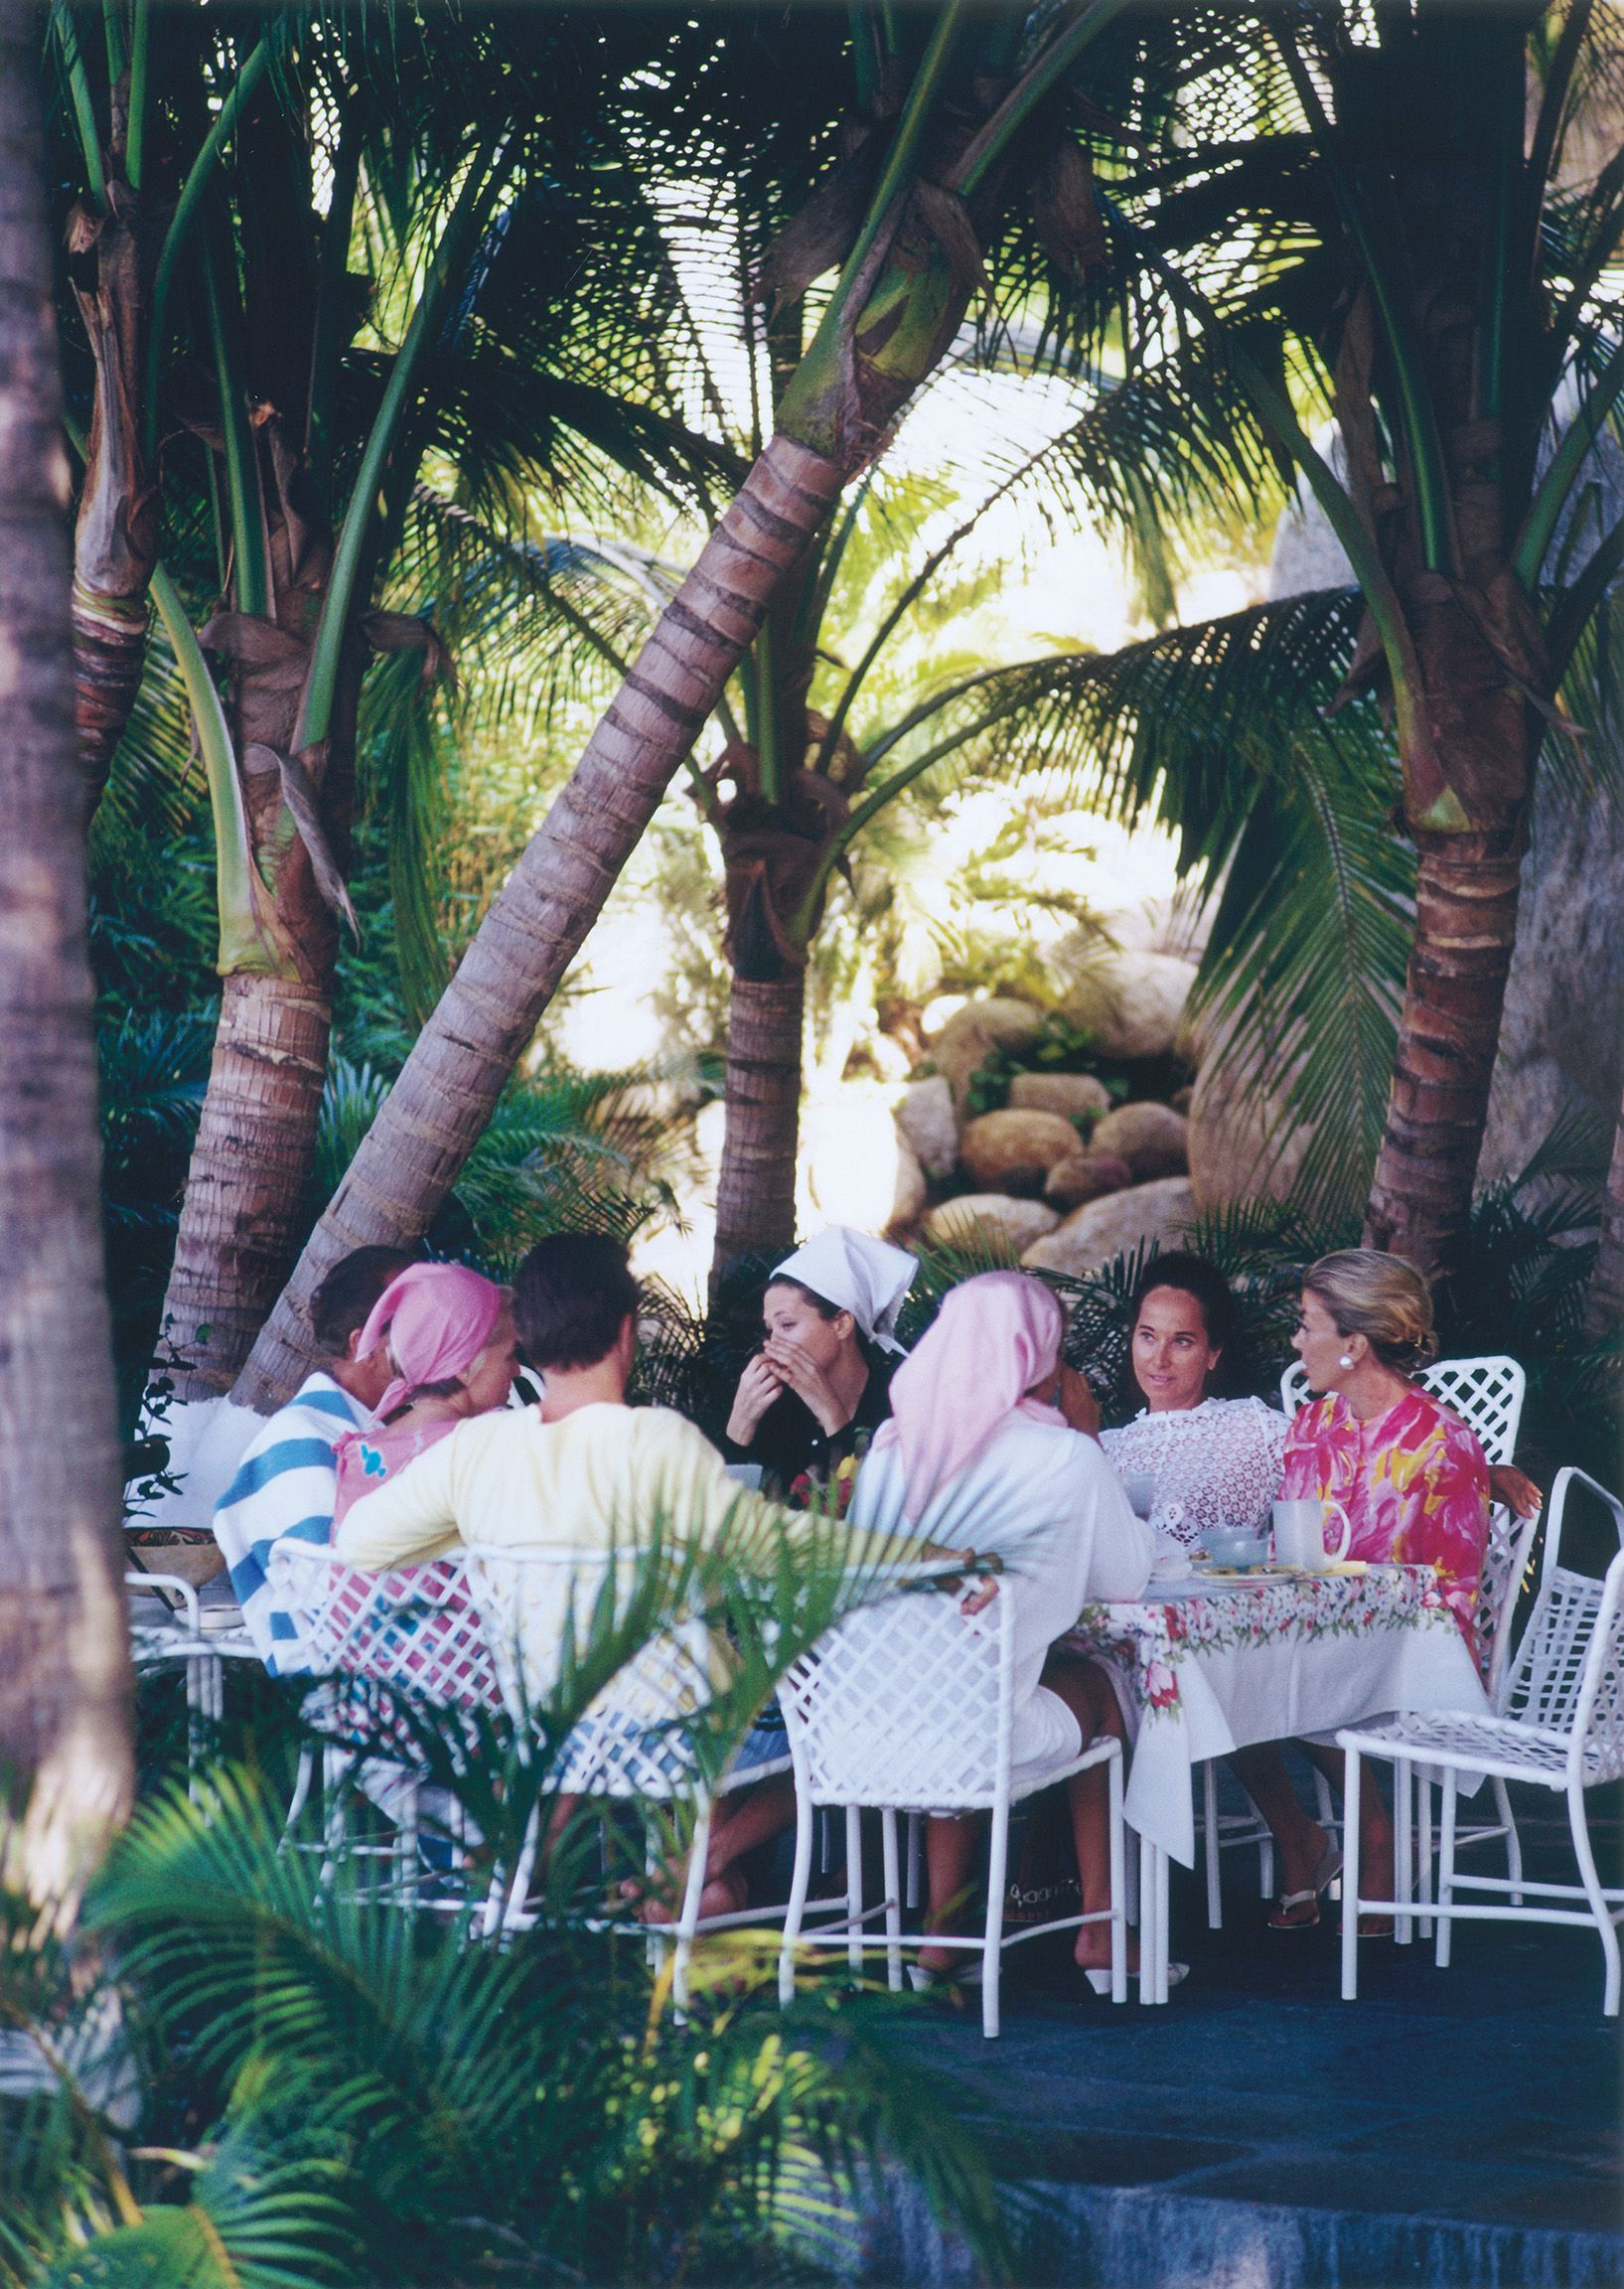 oberon lunch slim aarons - Google Search